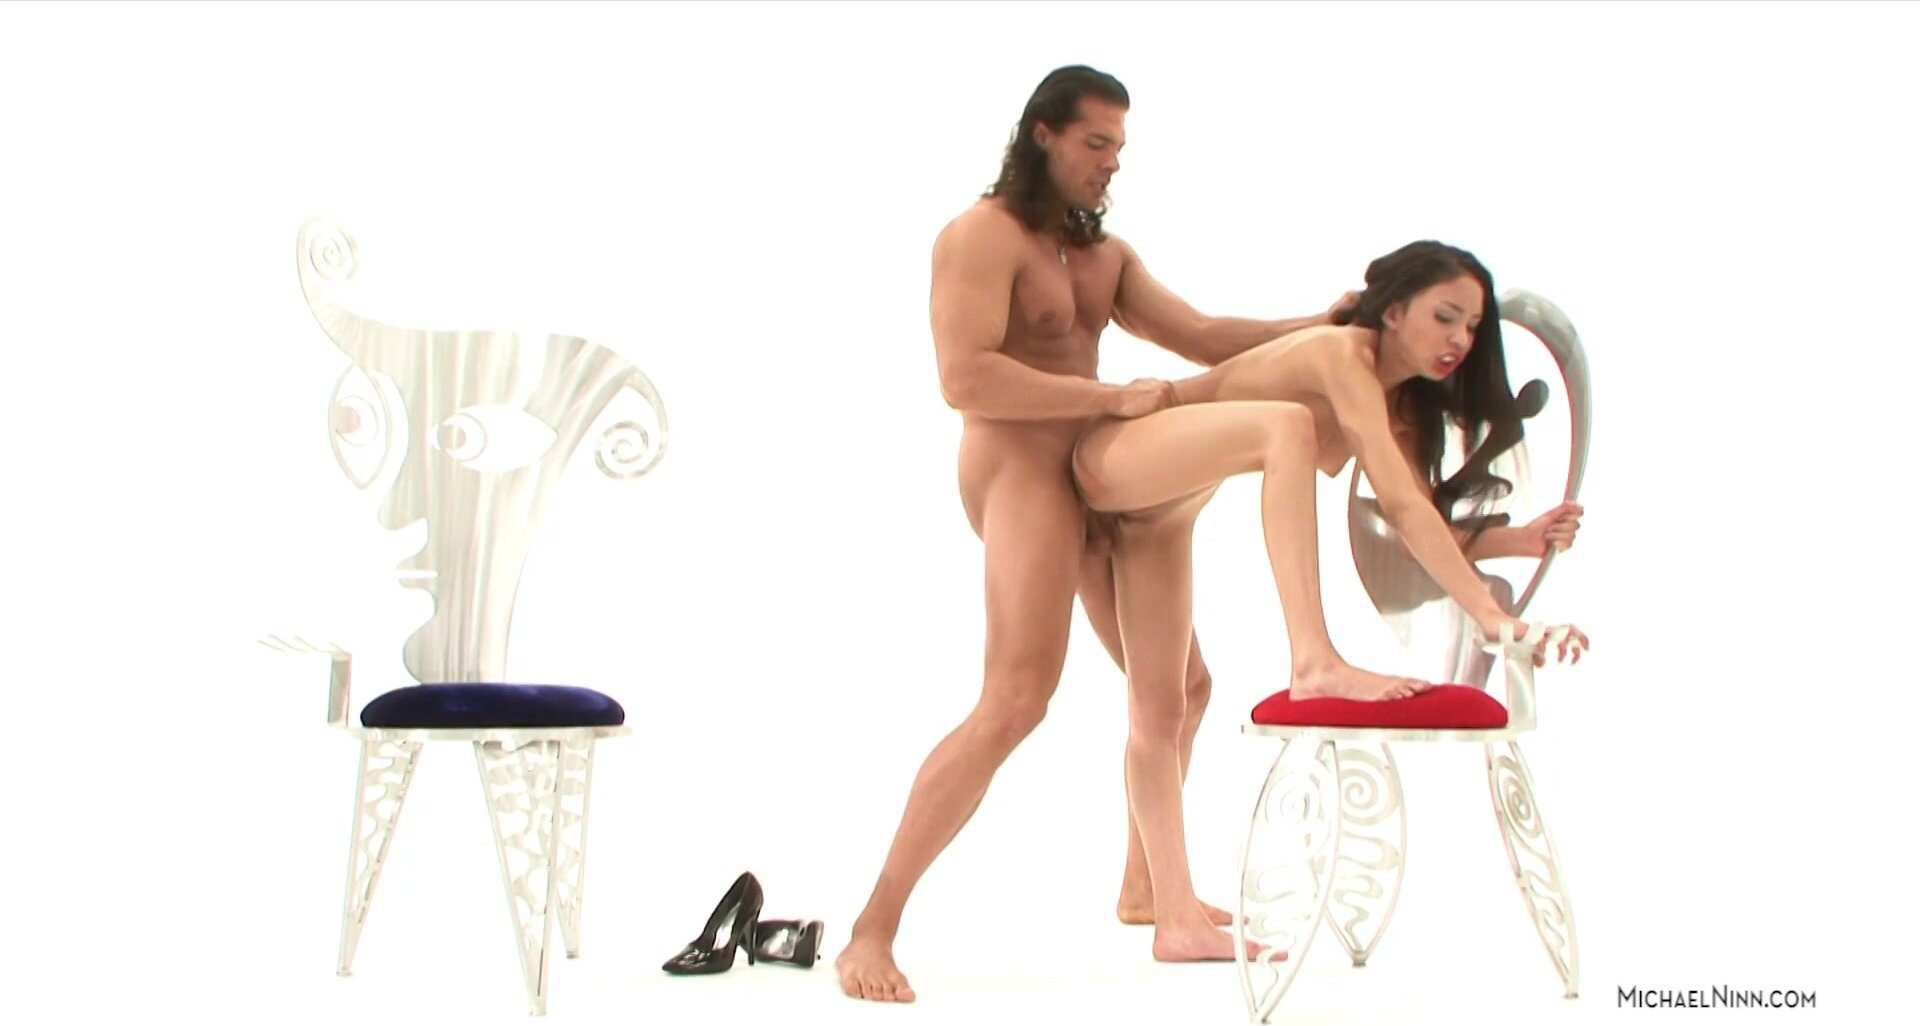 Good Action With Slutty Brunette - Alexis Love